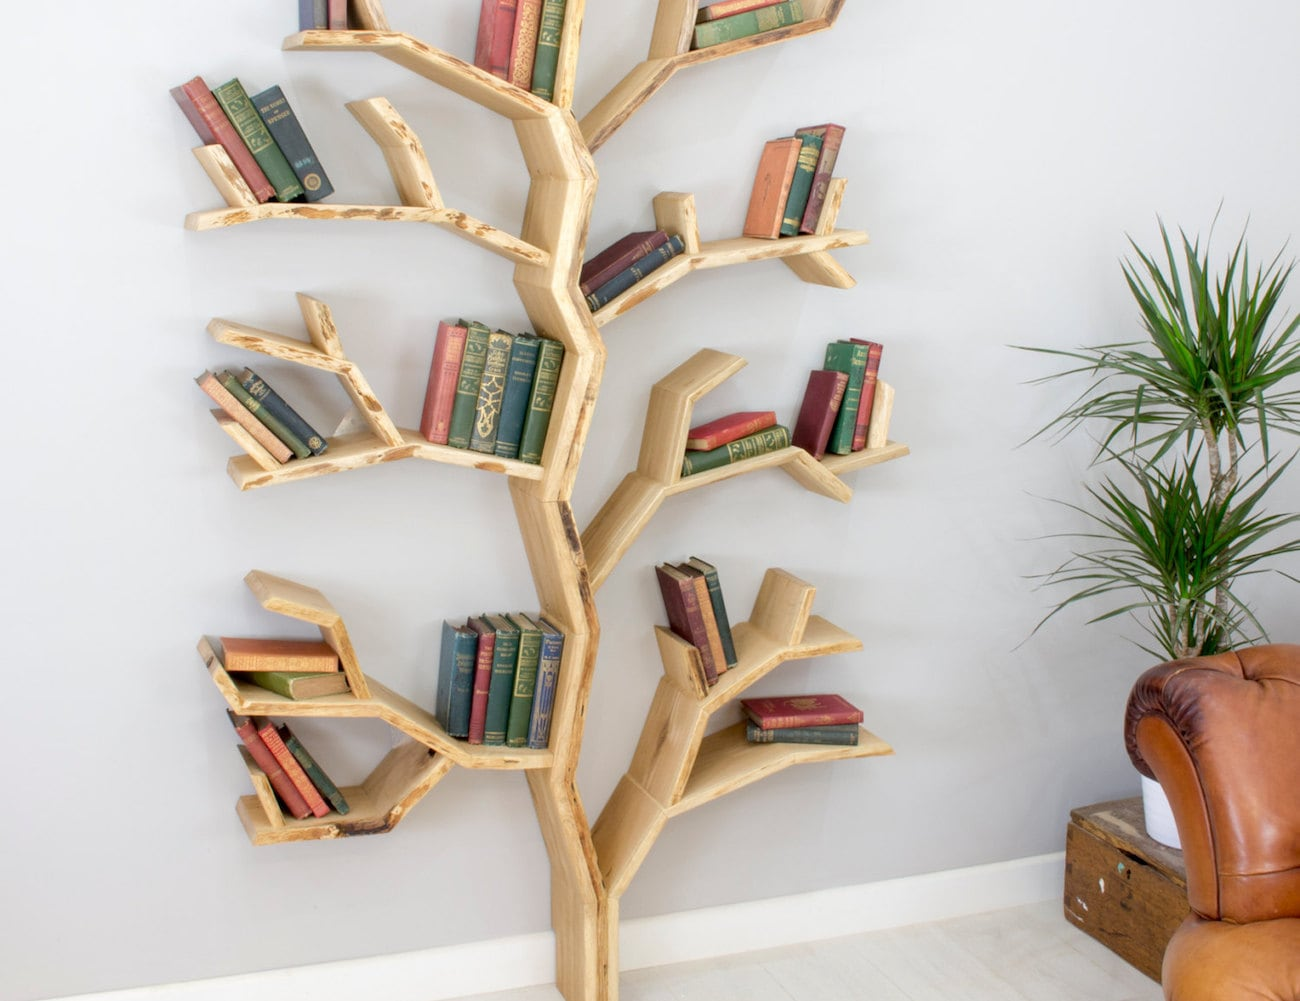 BespOak+Elm+Tree+Wood+Bookshelf